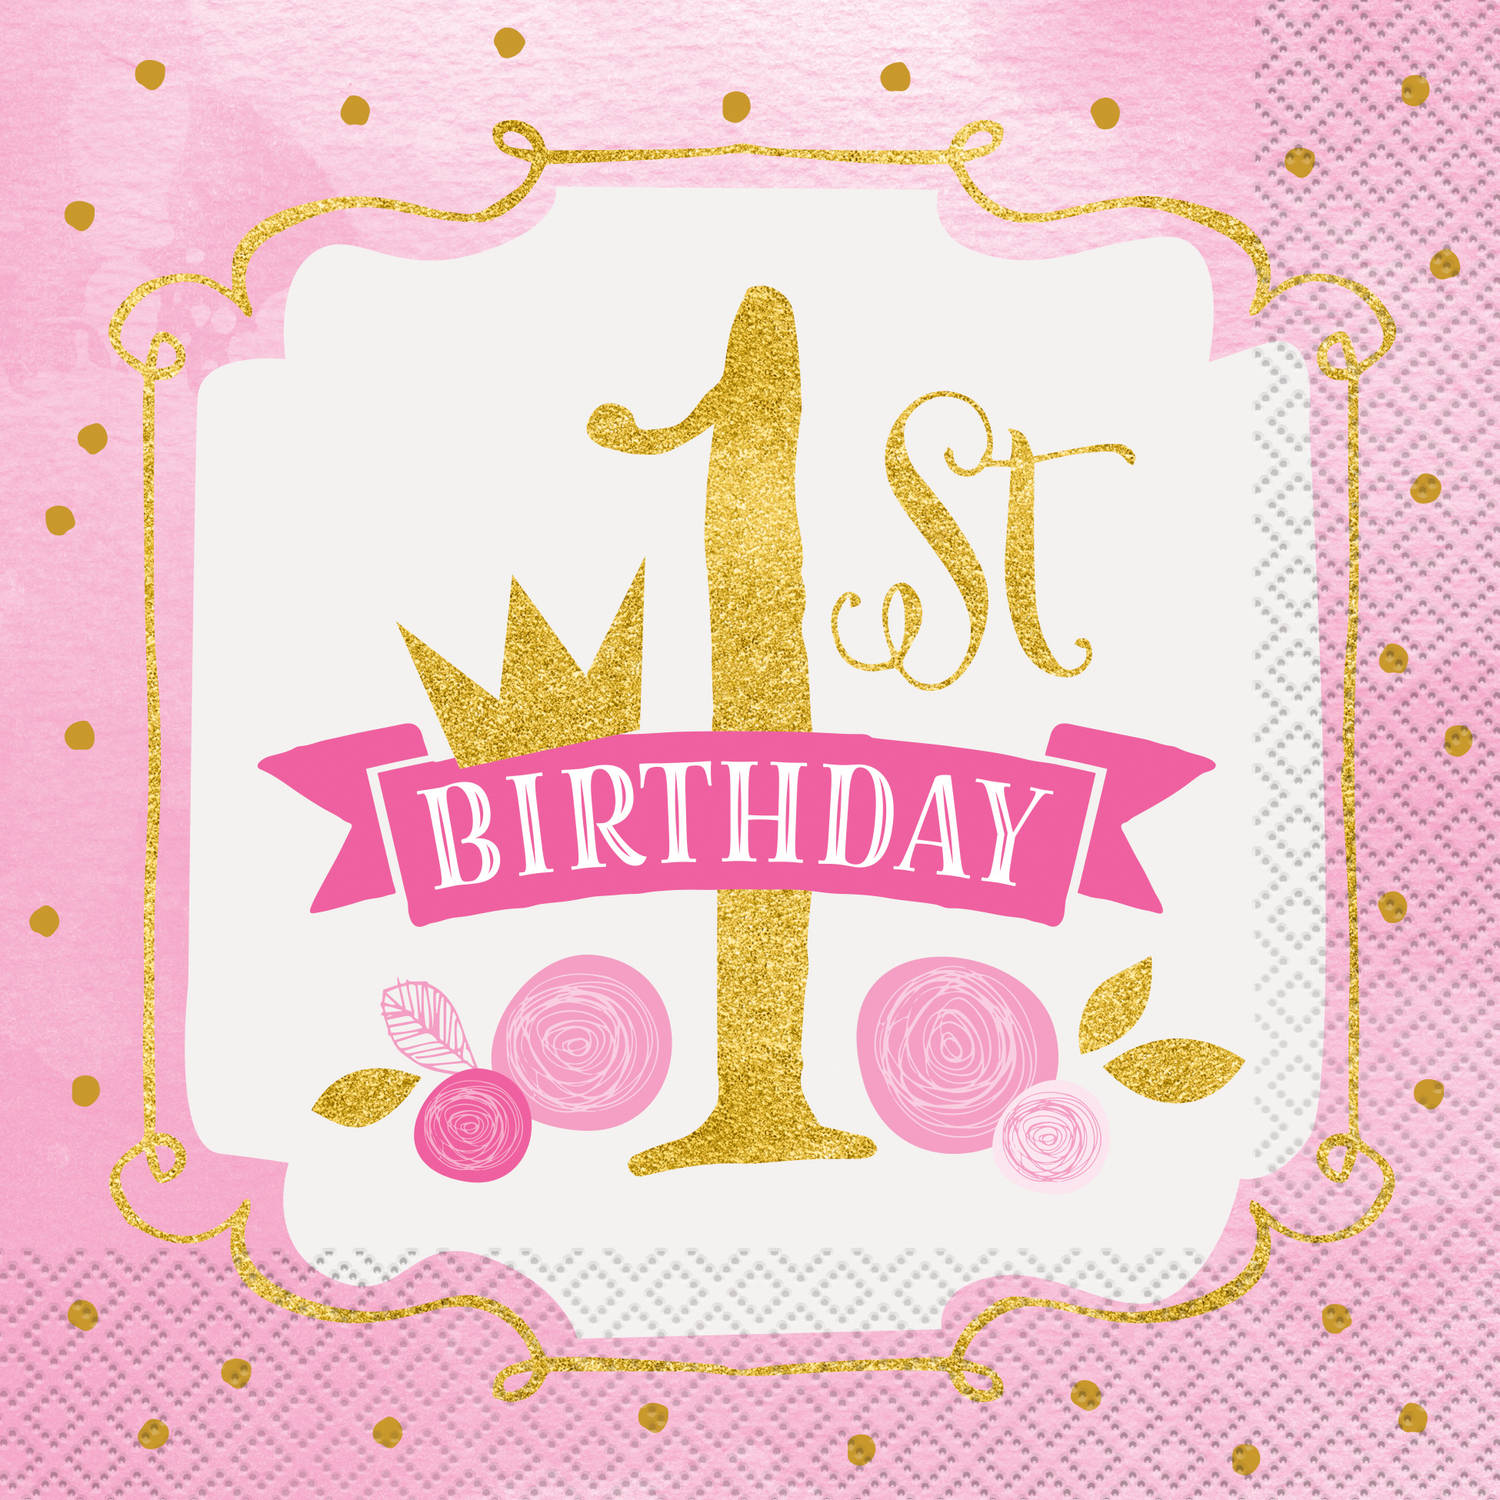 Pink and Gold Girls First Birthday Party Lunch Napkins, 16ct